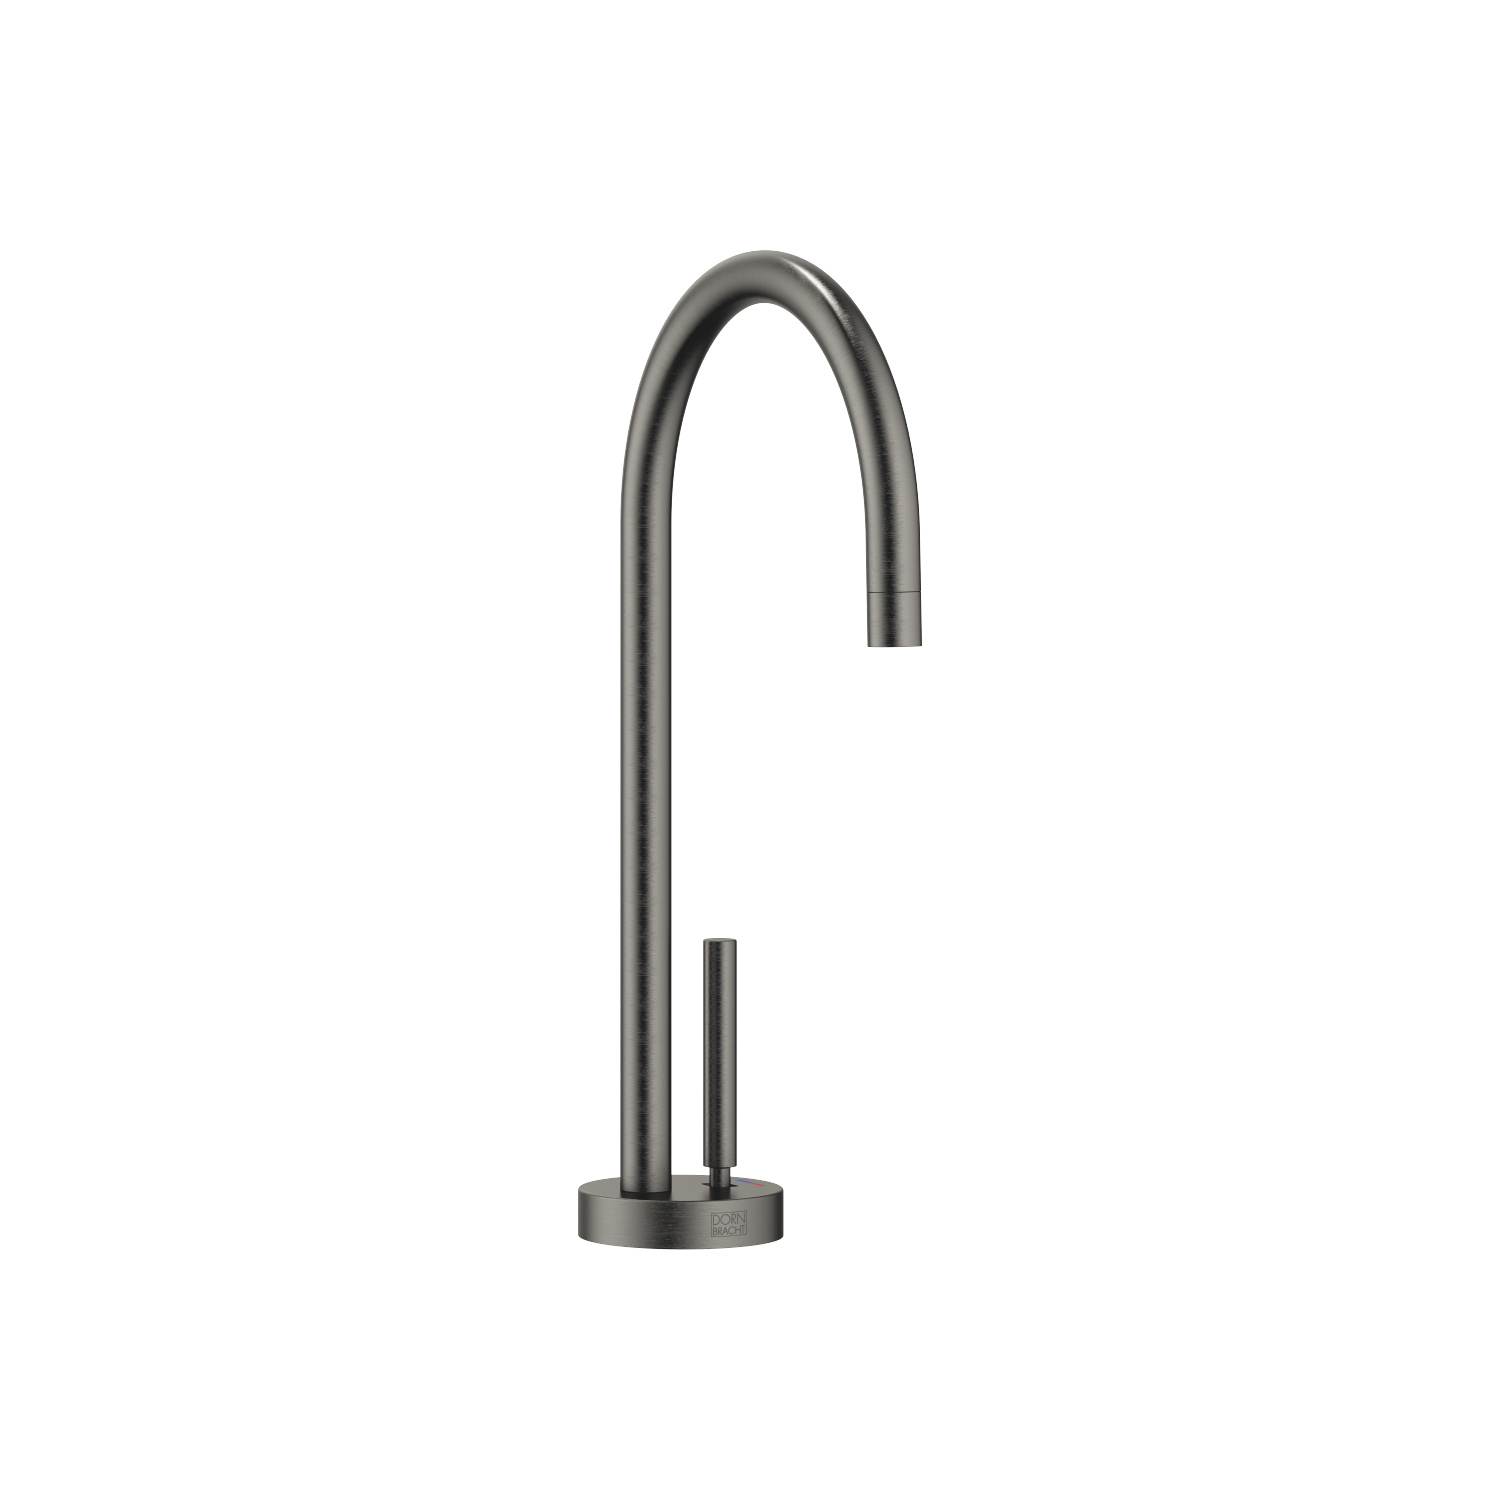 HOT & COLD WATER DISPENSER - Dark Platinum matt